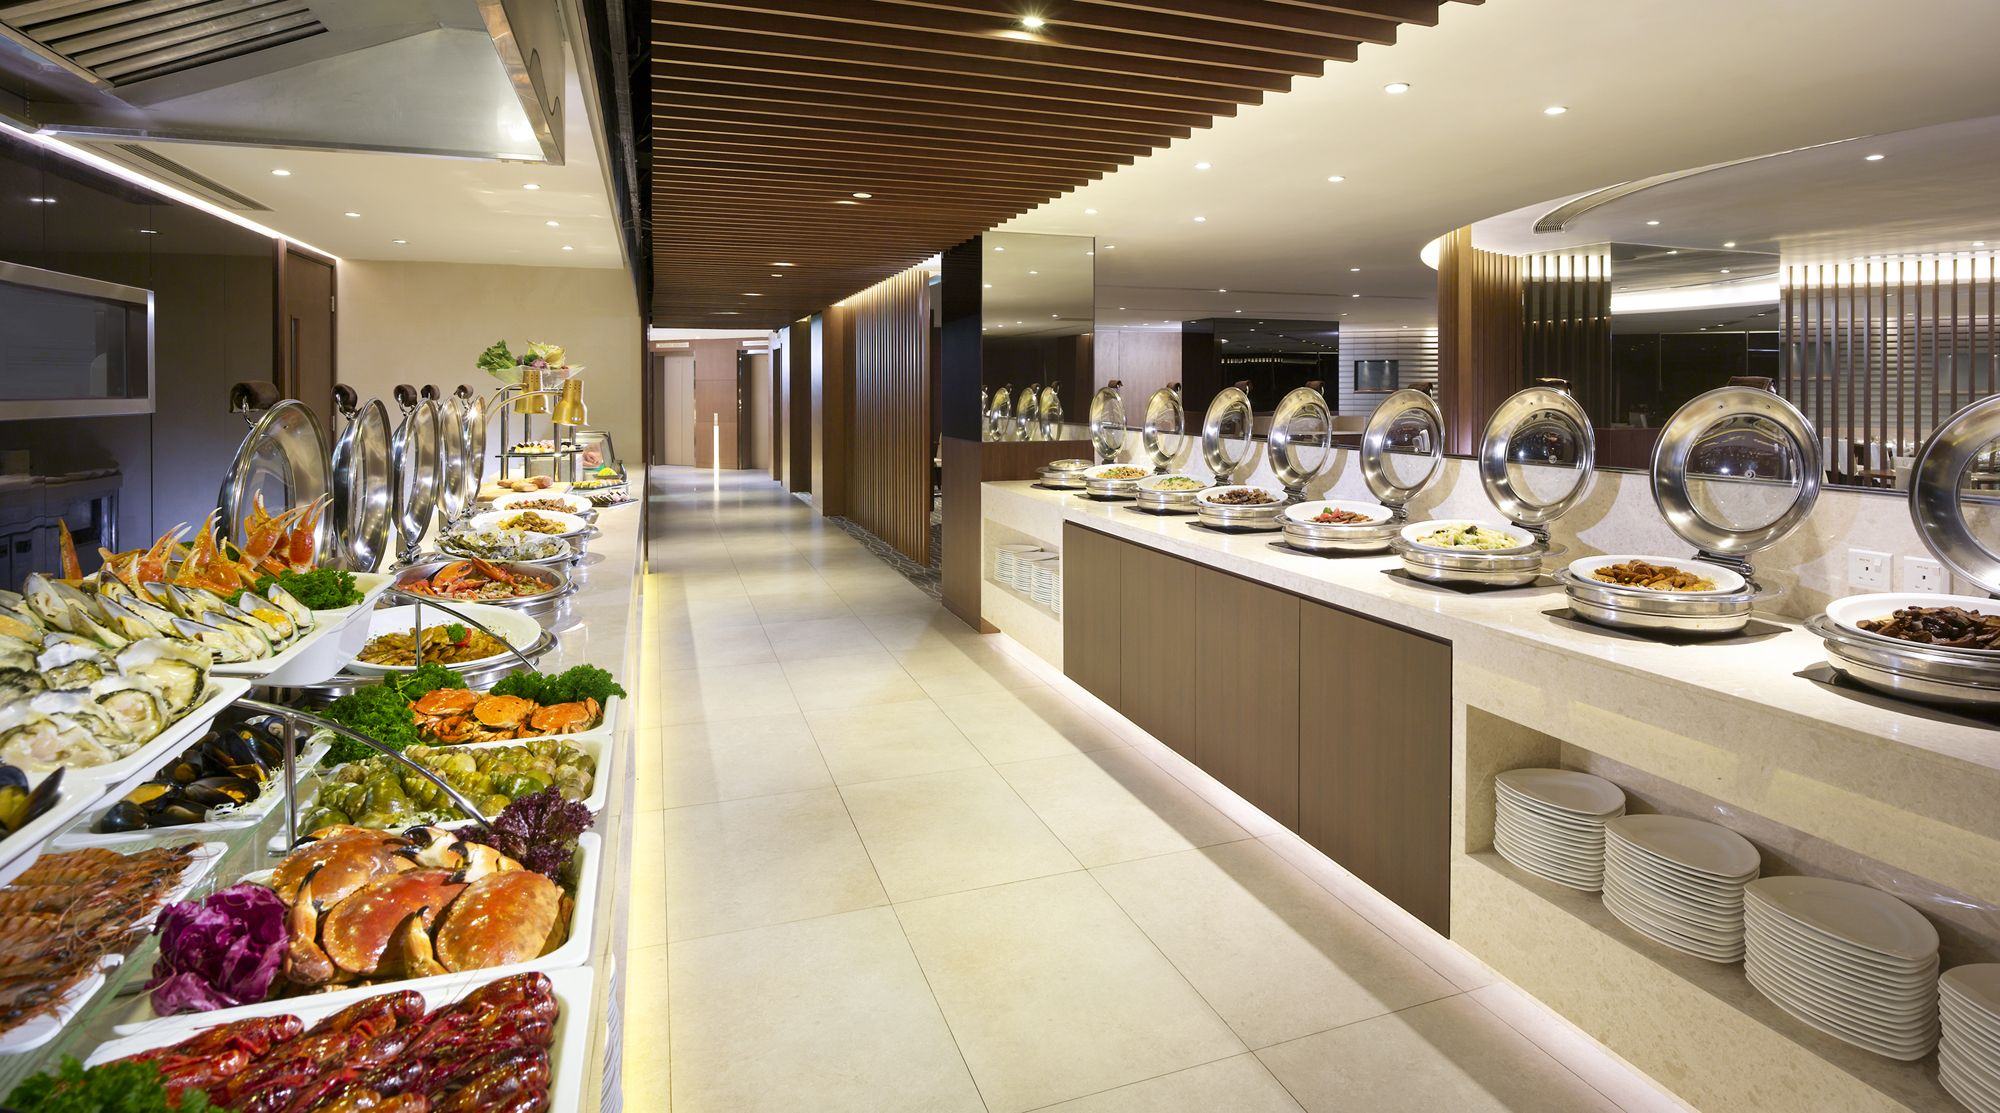 Buffet Cuisine Design Harbour Restaurant Buffet Counter 1 F The Harbourview